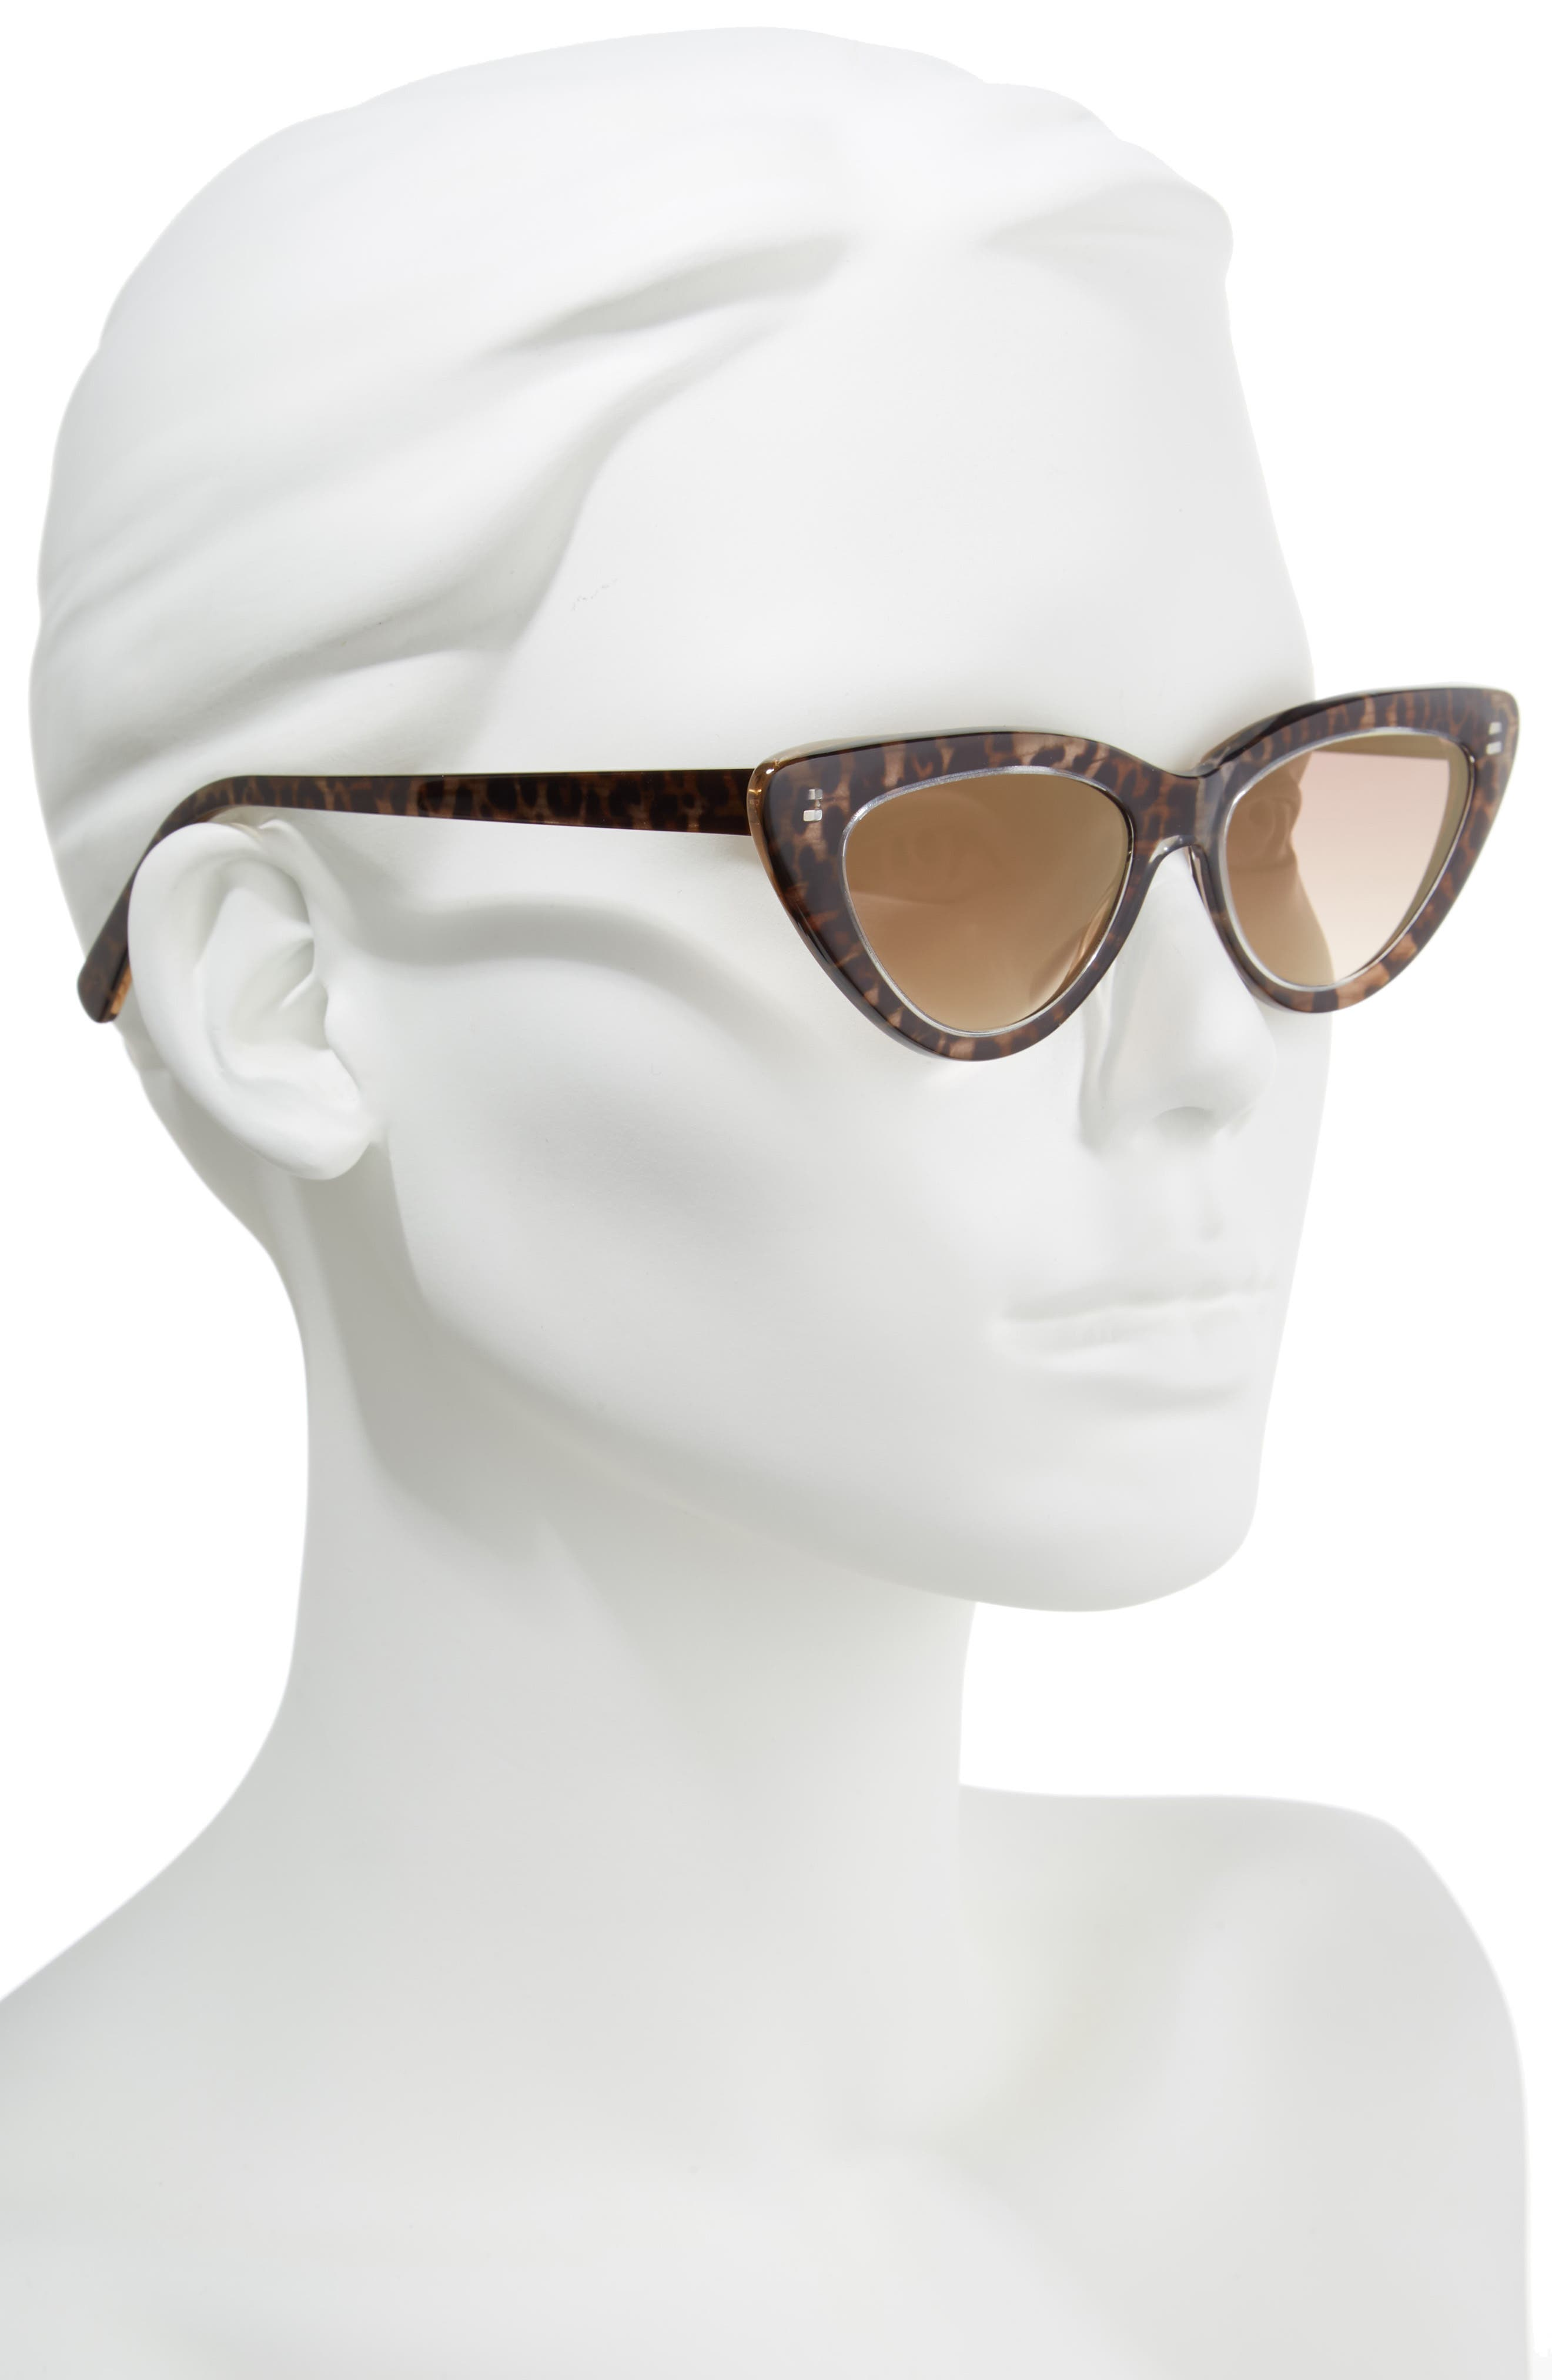 D'BLANC A-Muse 52mm Sunglasses,                             Alternate thumbnail 2, color,                             CHEETAH